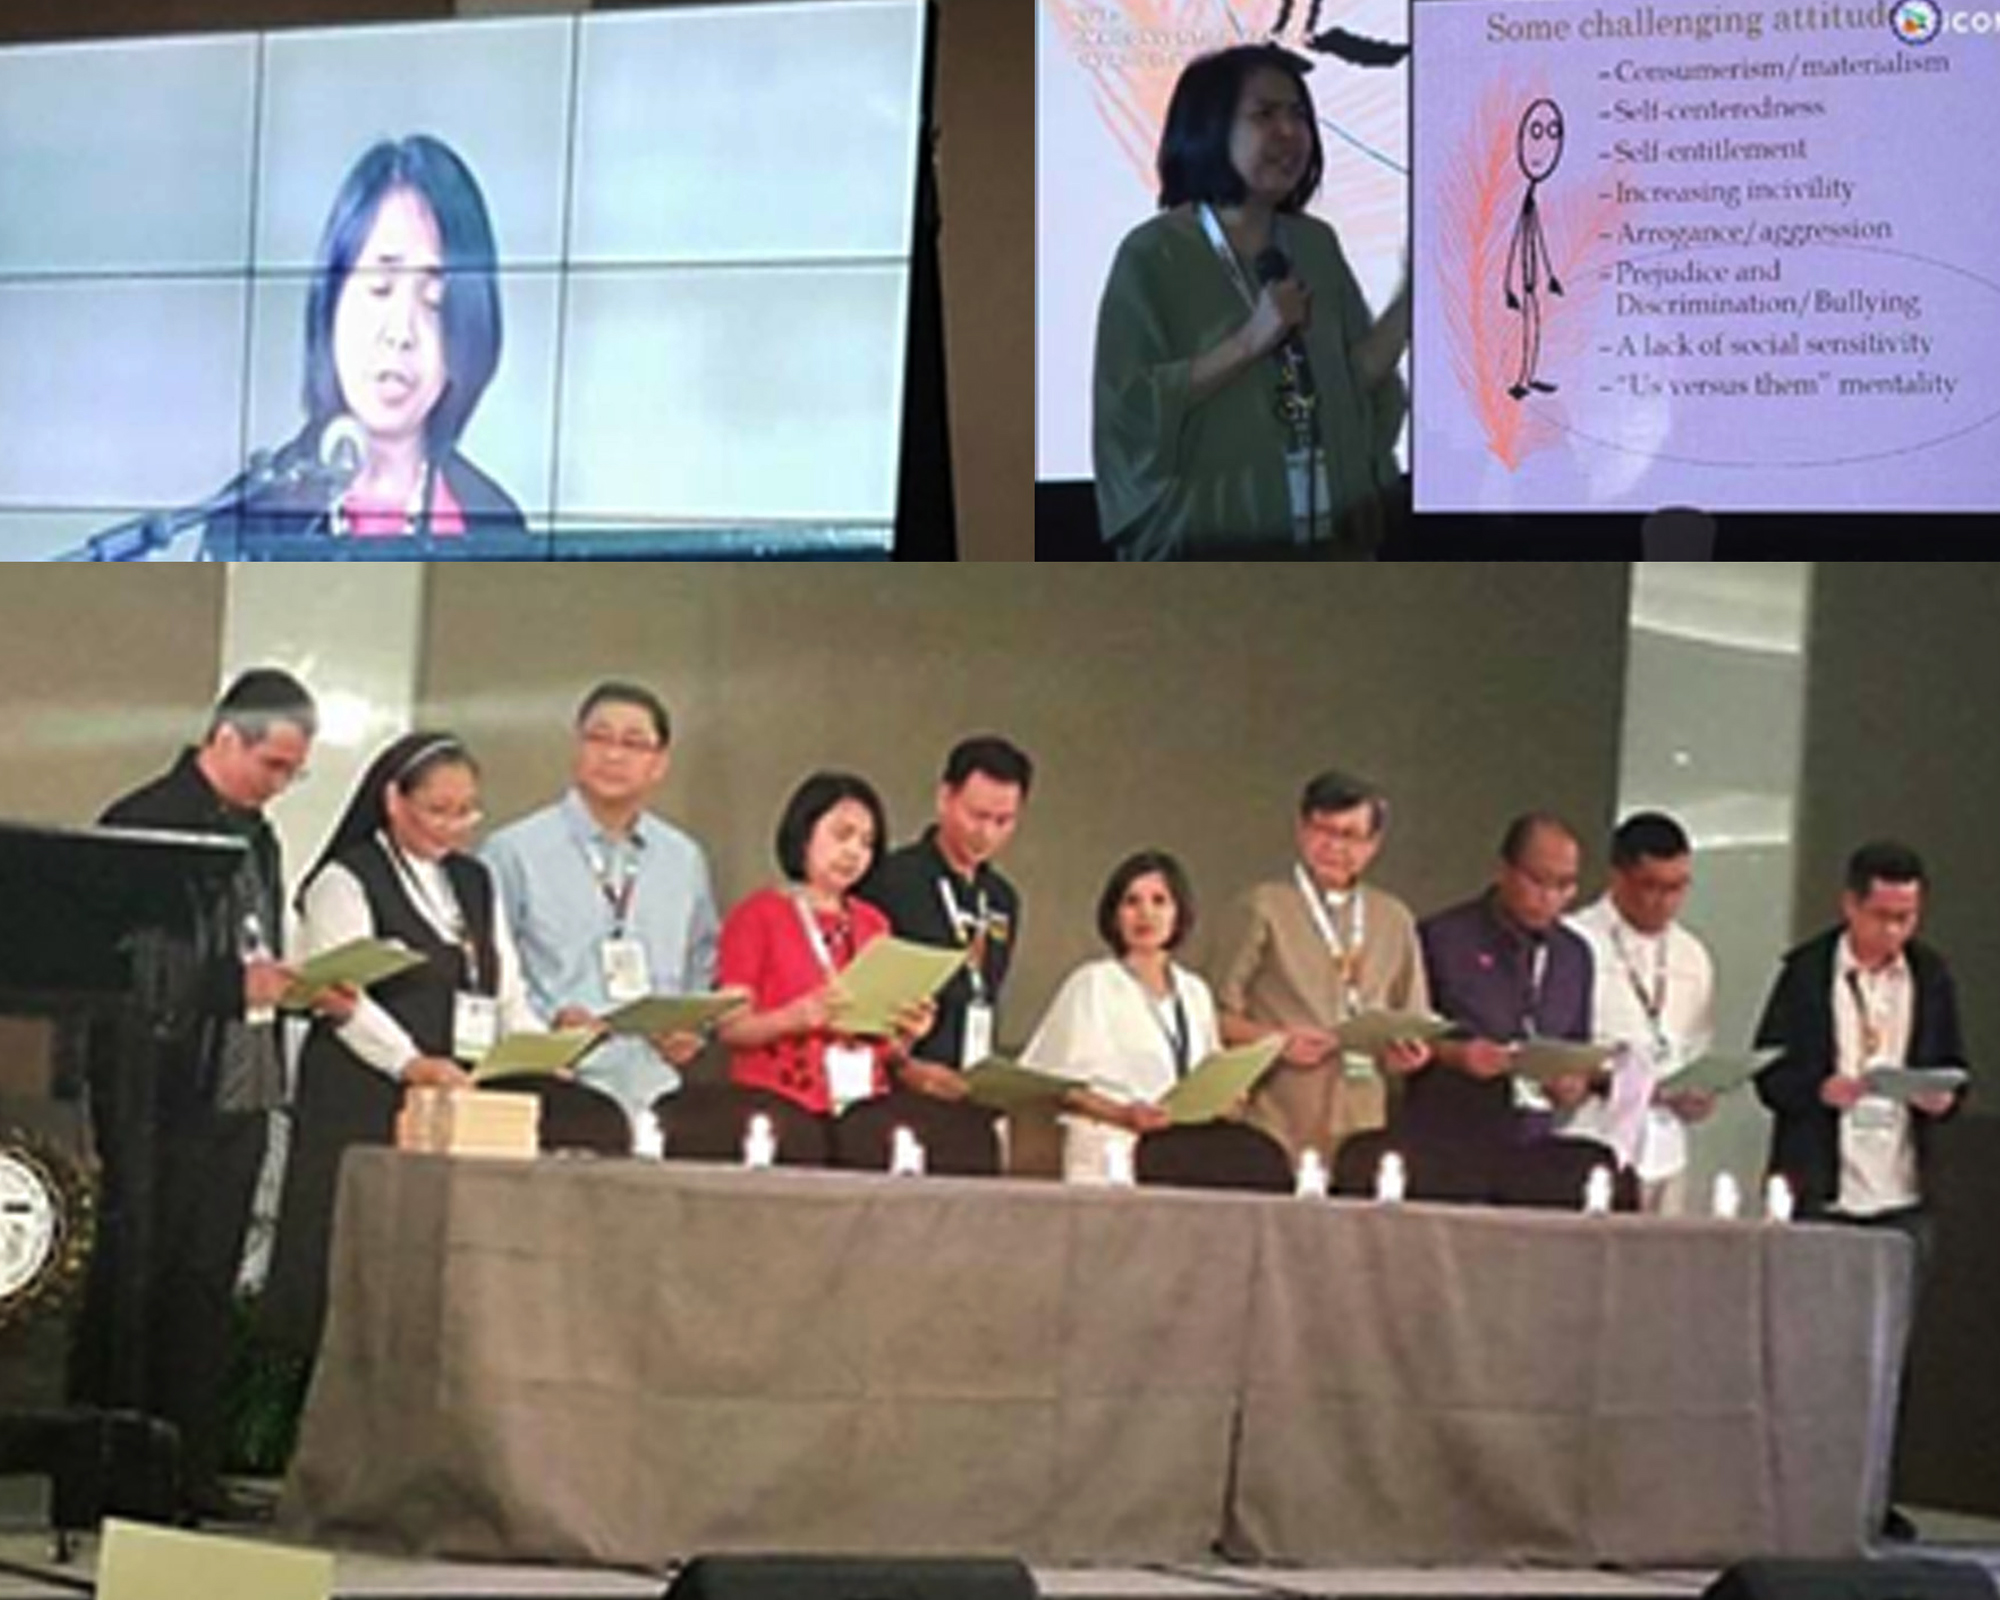 CPE shares perspectives on integral human formation at CEAP convention